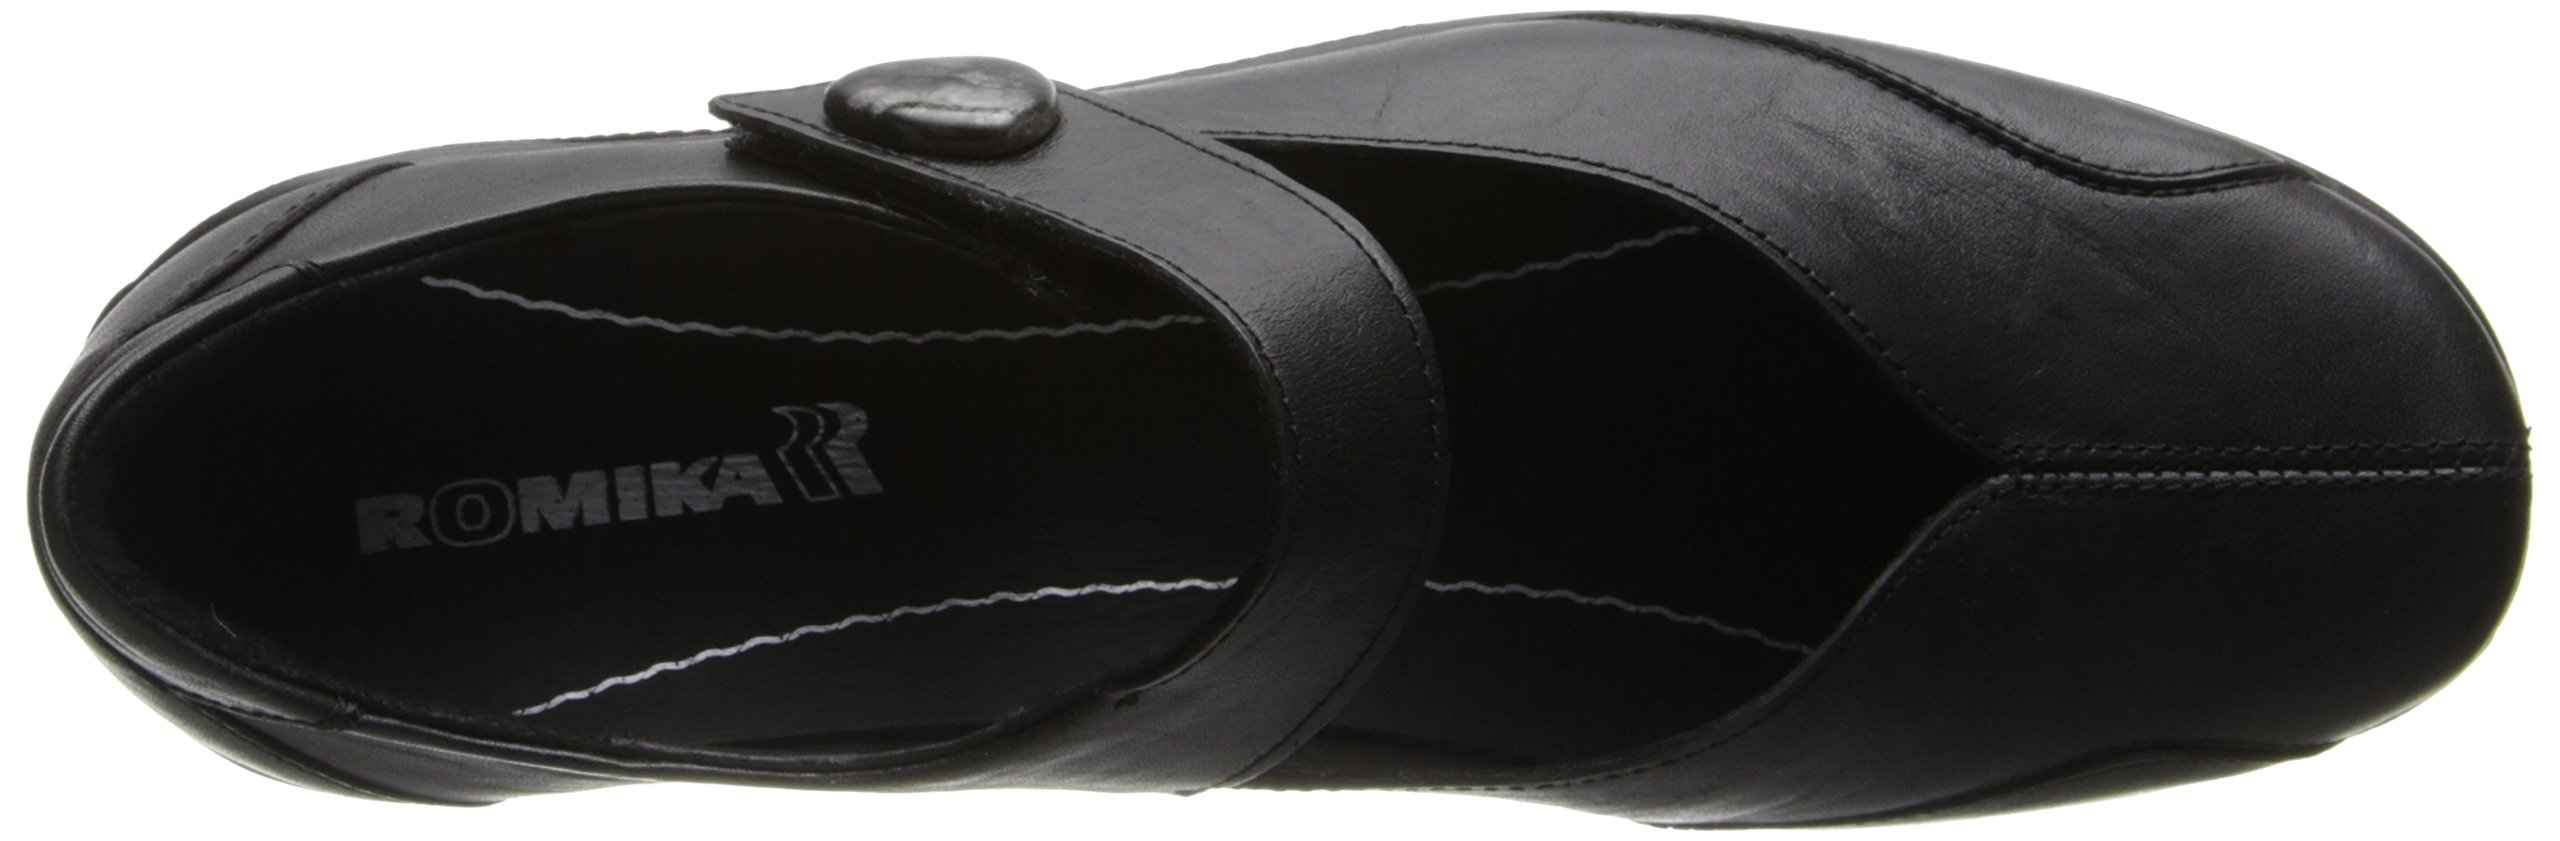 Romika Women's Citylight 87 Mary Jane Flat,Black,39 BR/8-8.5 M US by Romika (Image #8)